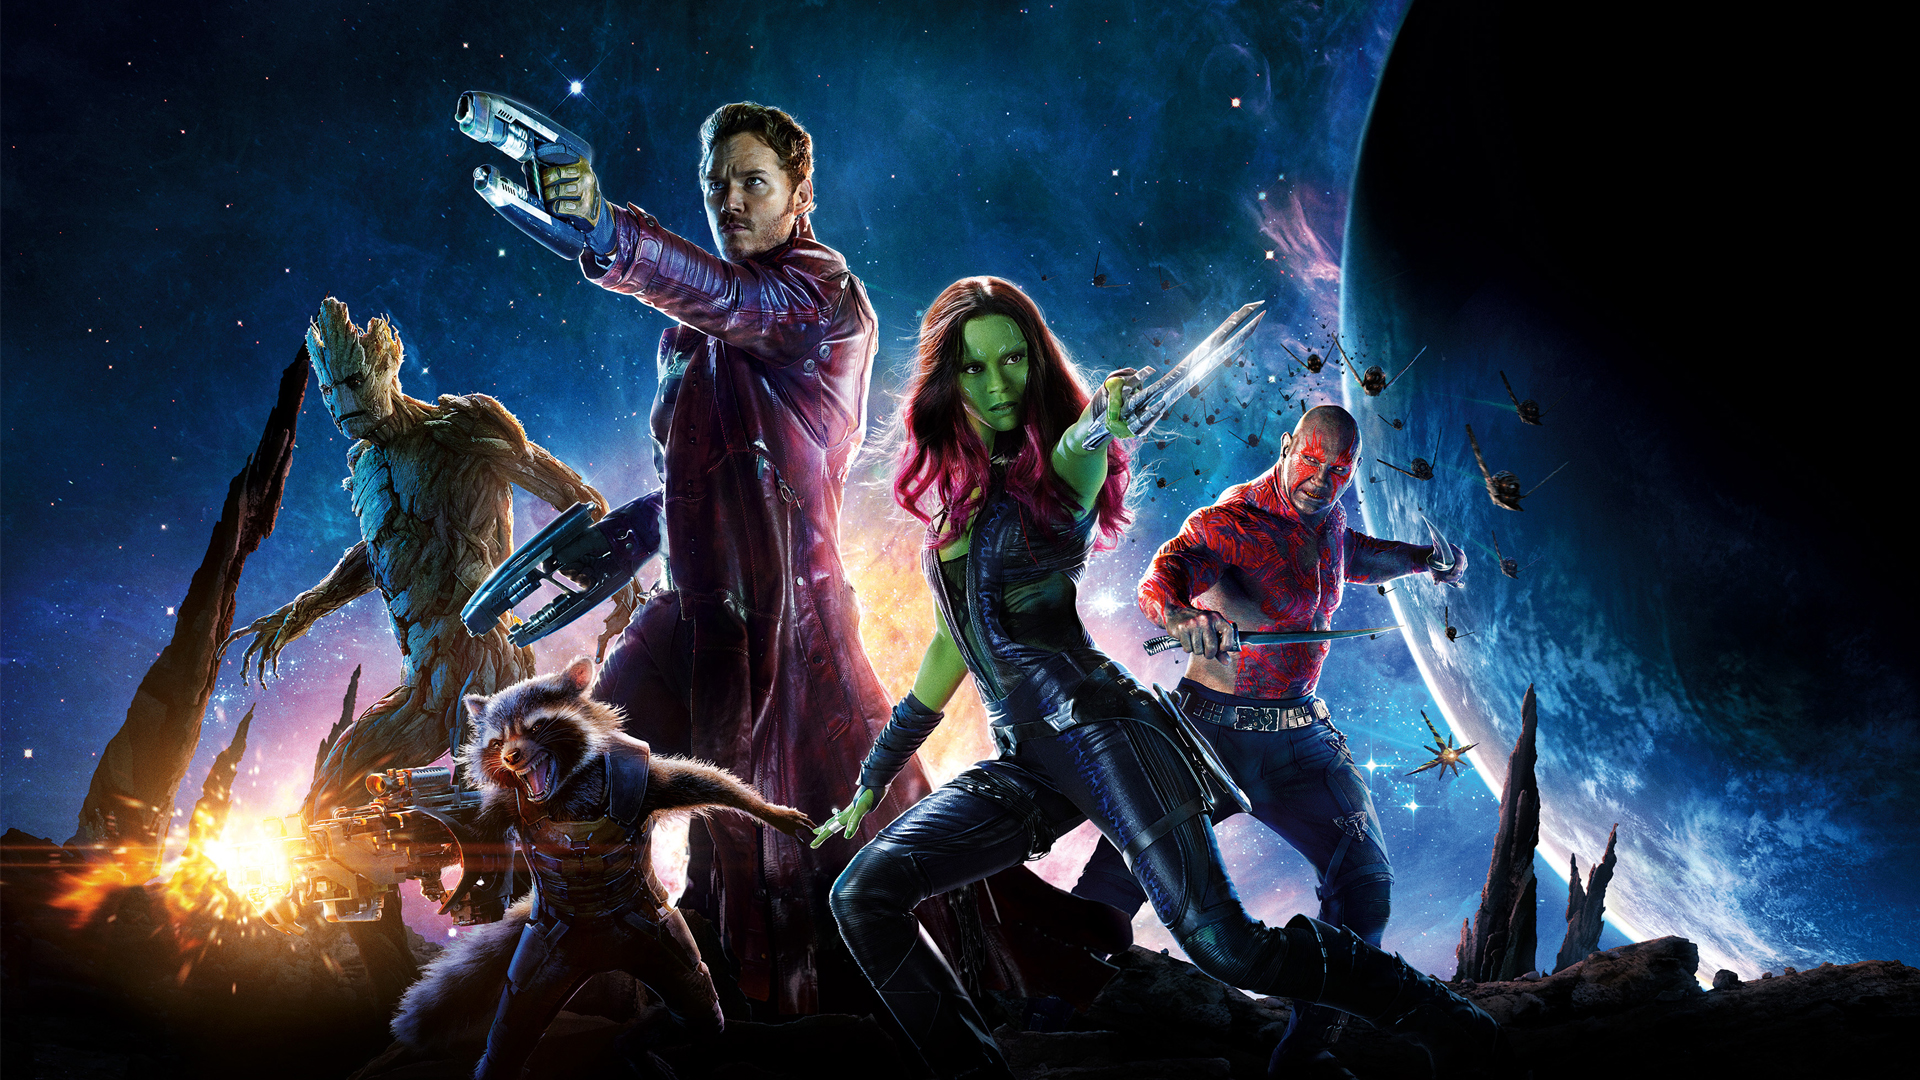 Download Full HD Wallpapers absolutely free for your pc desktop, laptop and mobile devices. Guardians of the Galaxy Movie Wallpapers